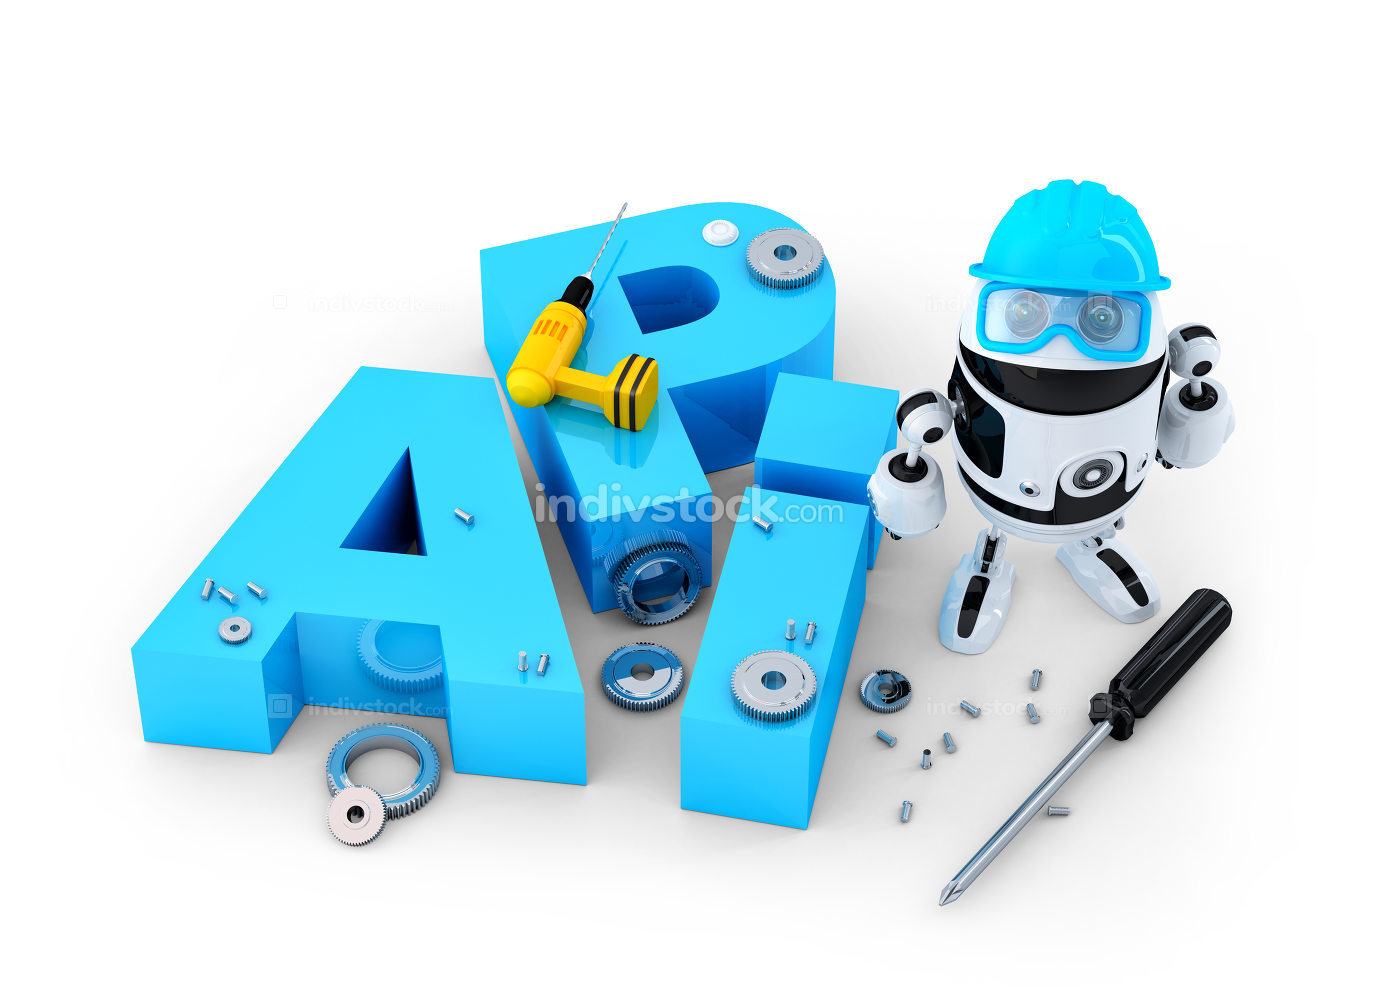 Robot with tools and application programming interface sign. Technology concept